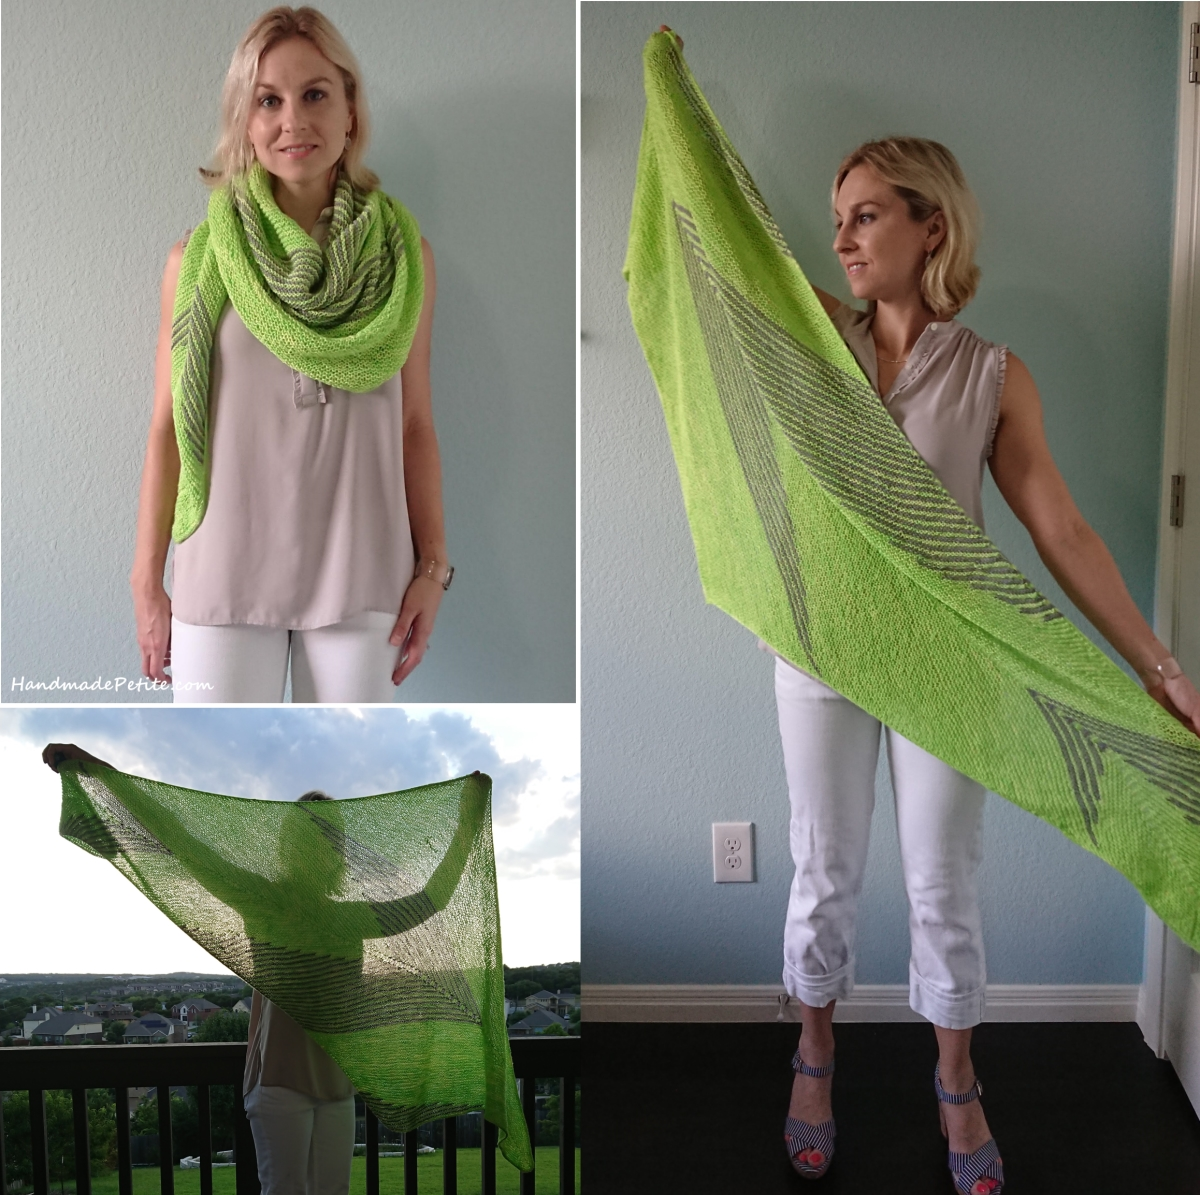 Knit shawl neon green and grey side by side pattern